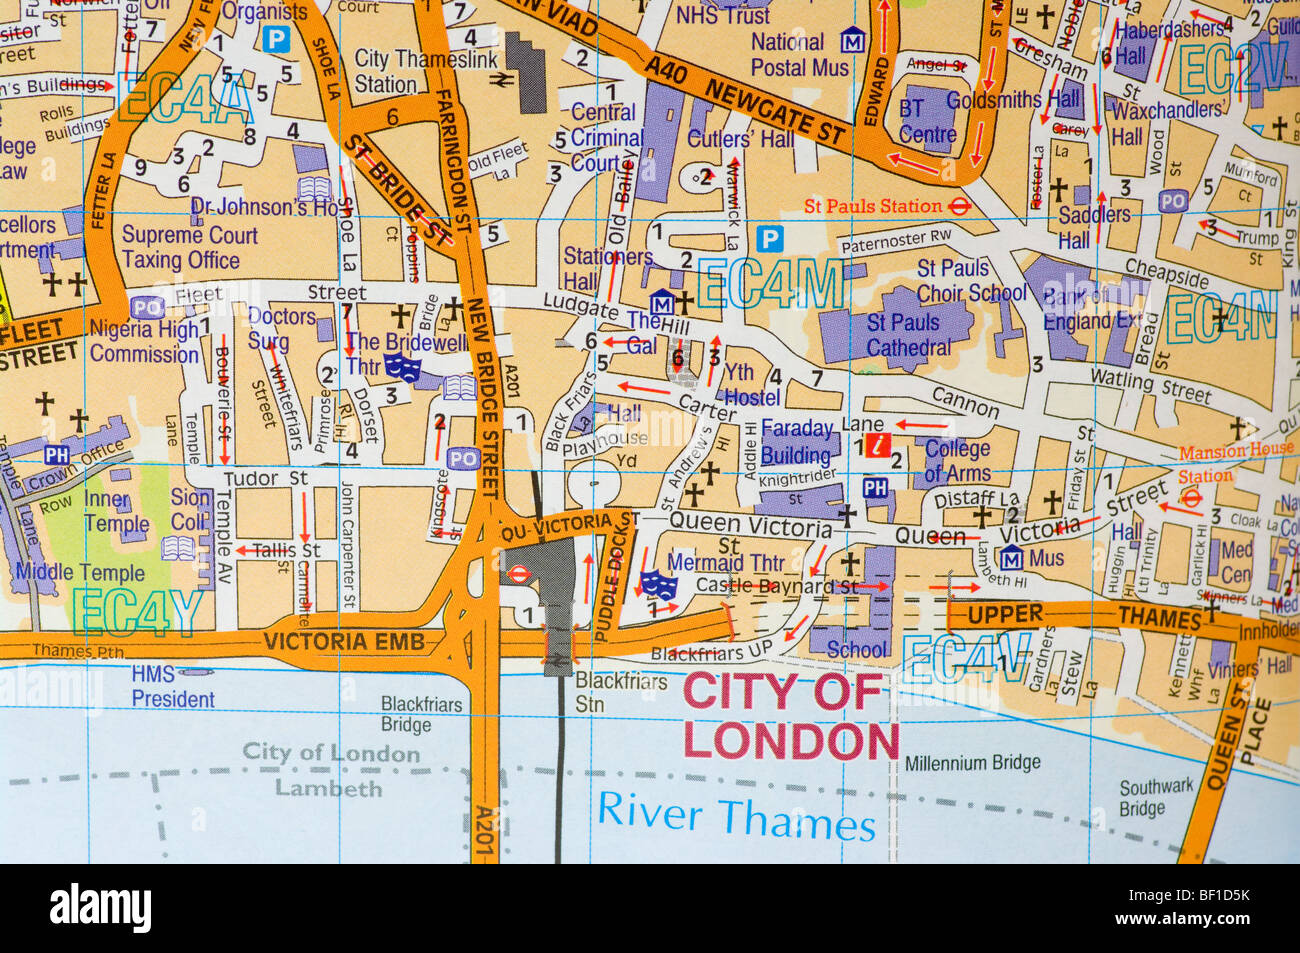 Street Road Map Of The City Of London Uk Photo Royalty Free – Map of London Uk